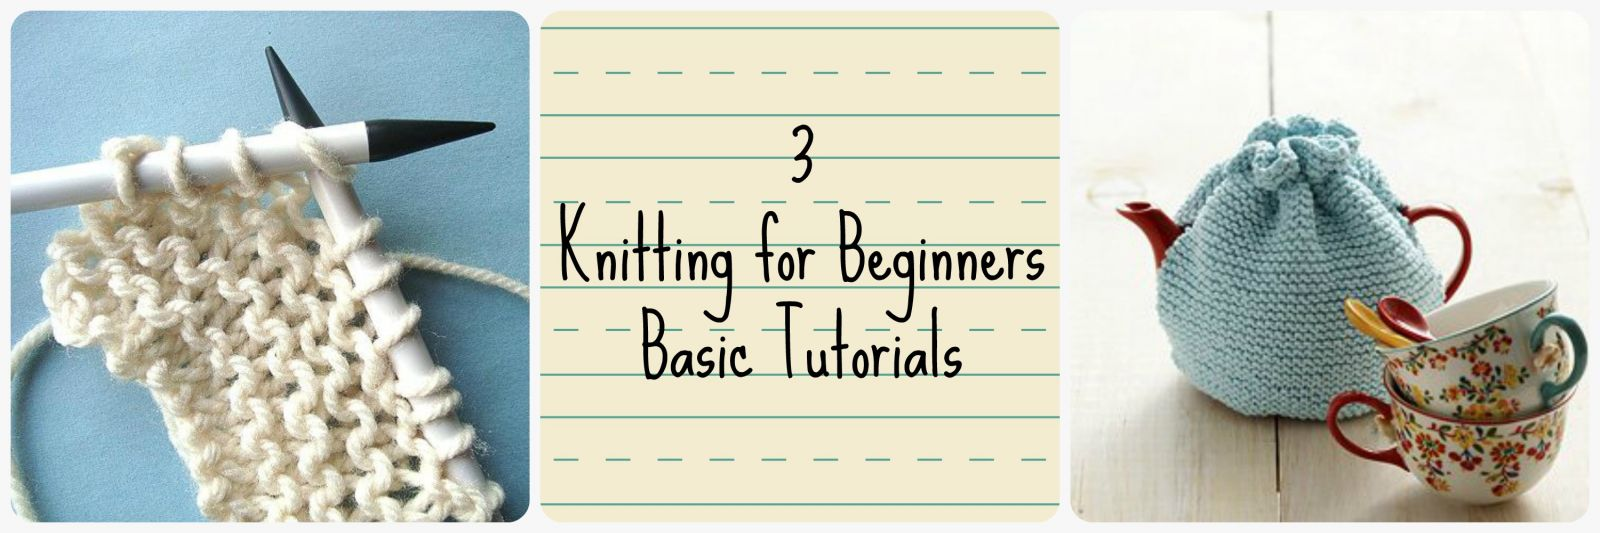 Knitting Lifeline After The Fact : Knitting for beginners basic tutorials allfreeknitting